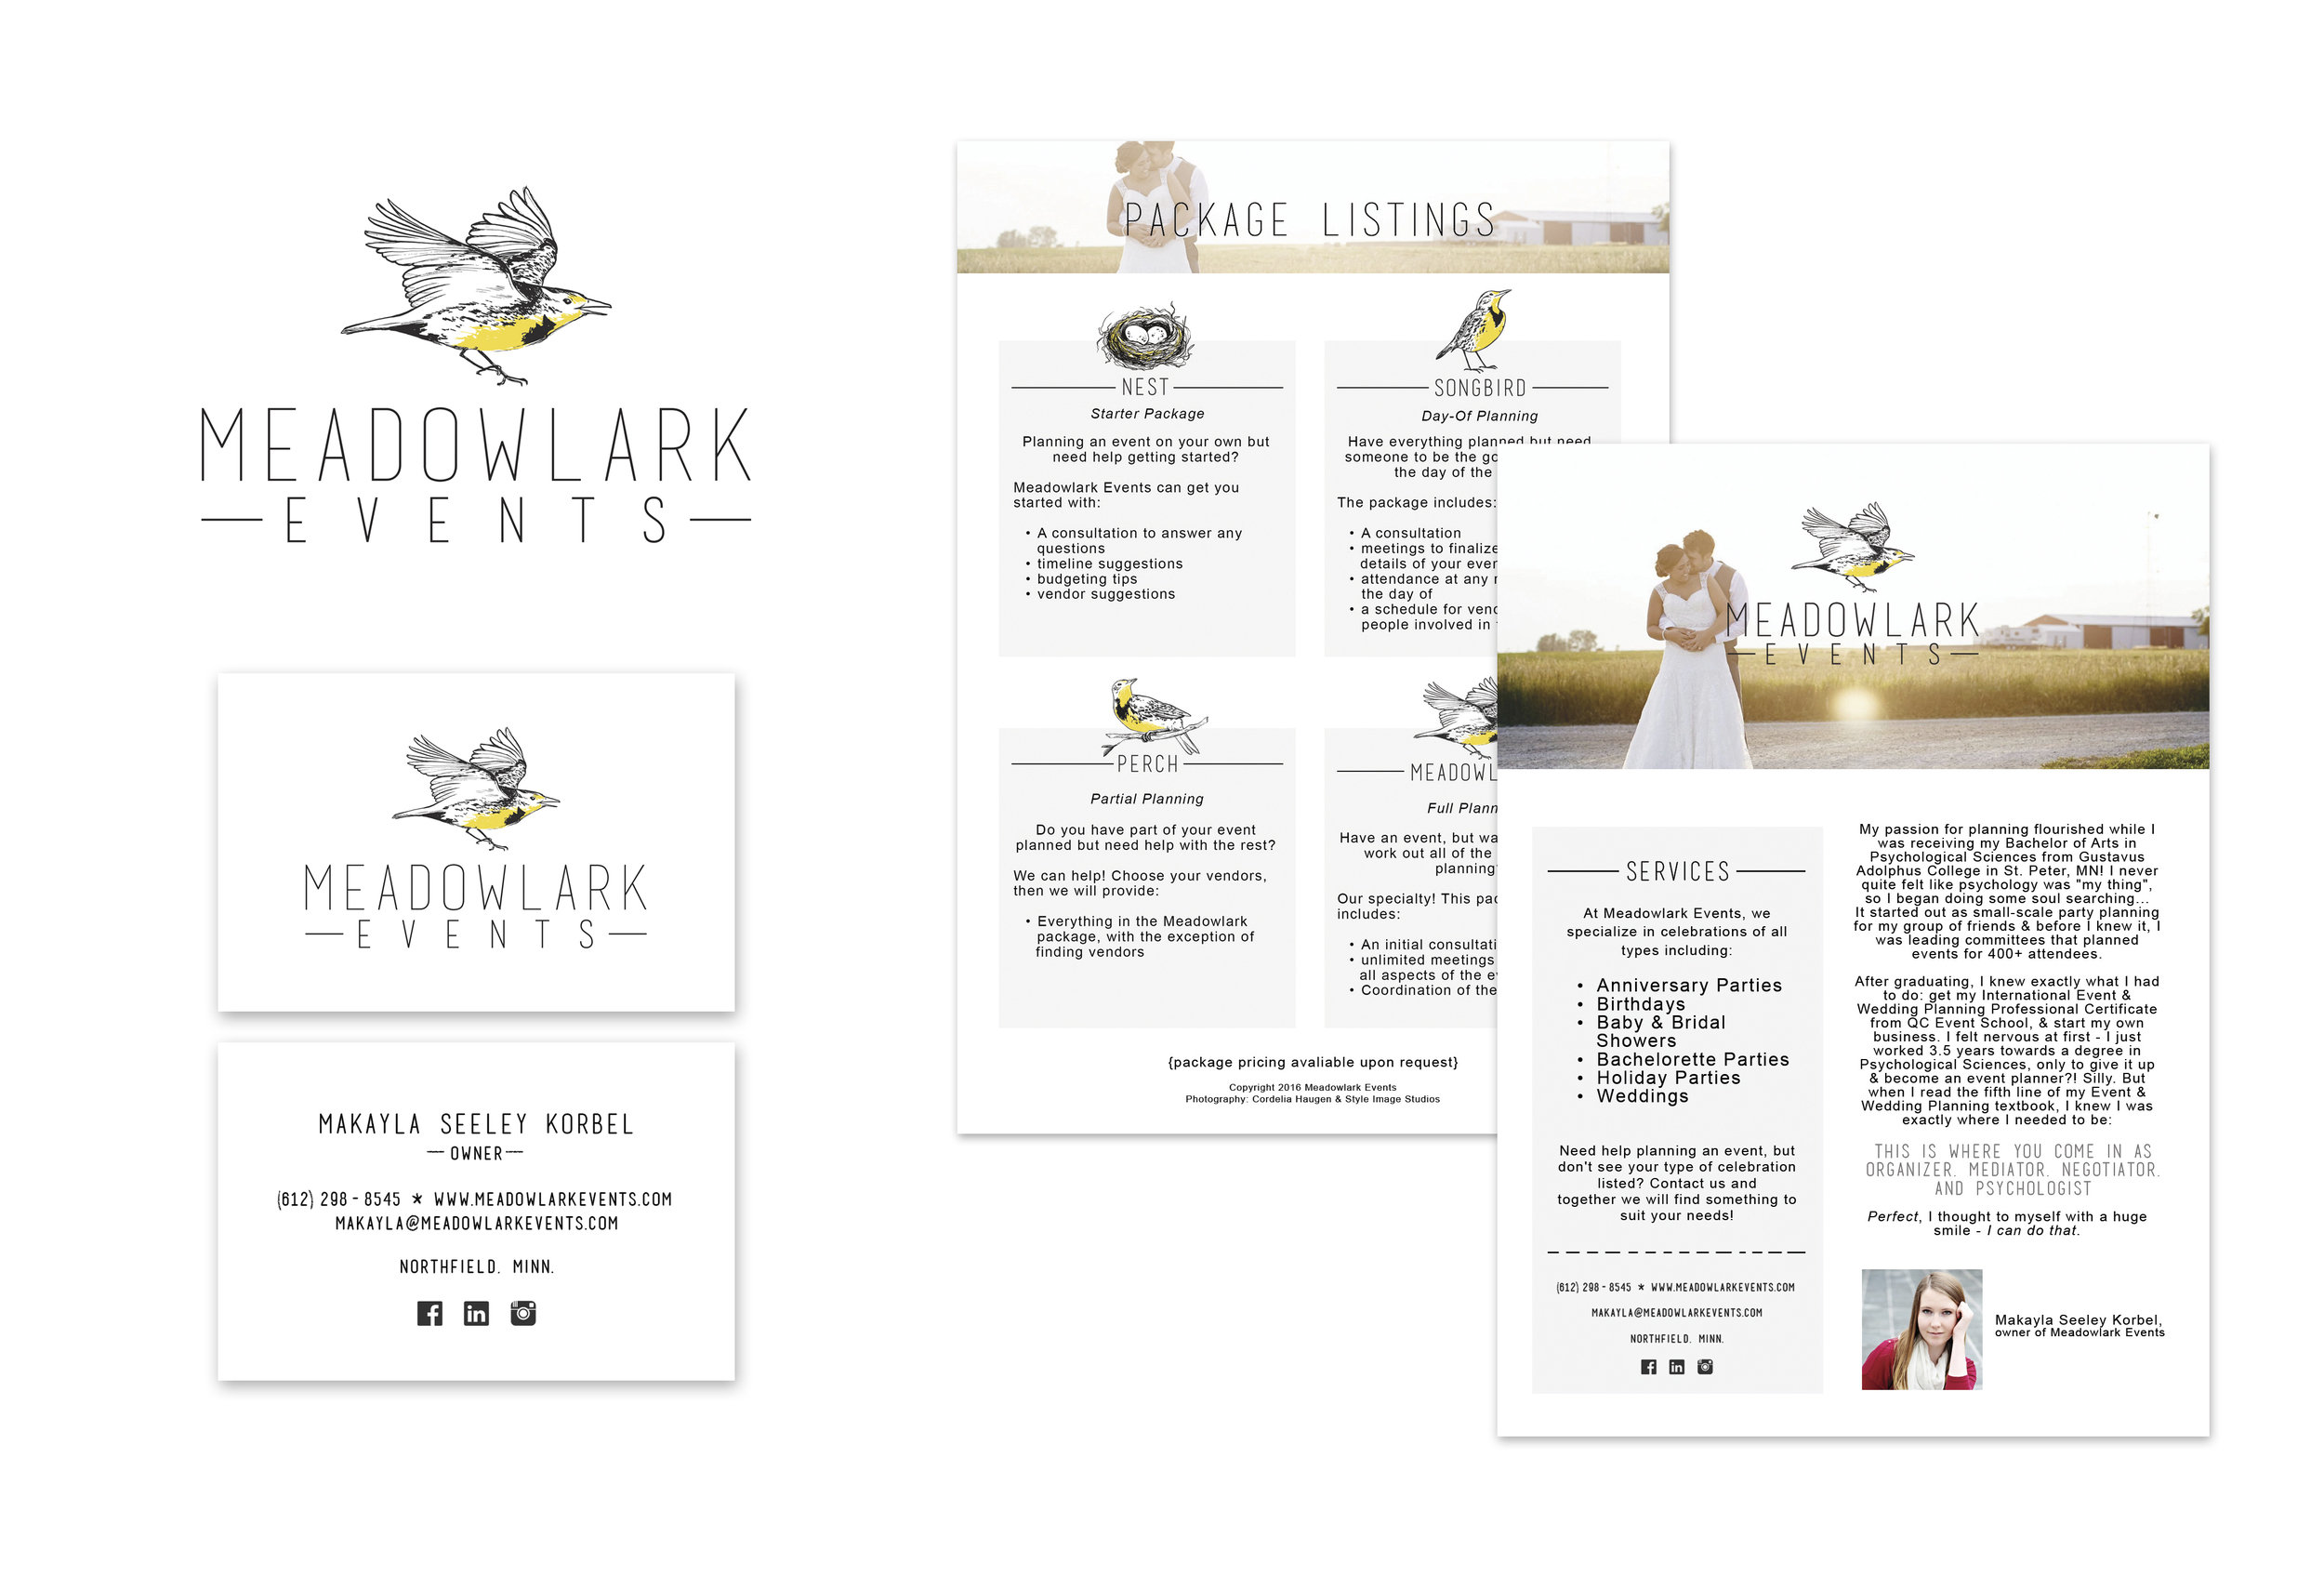 MEADOWLARK EVENTS   Promotional package including logo, business card, website headers, and fliers.